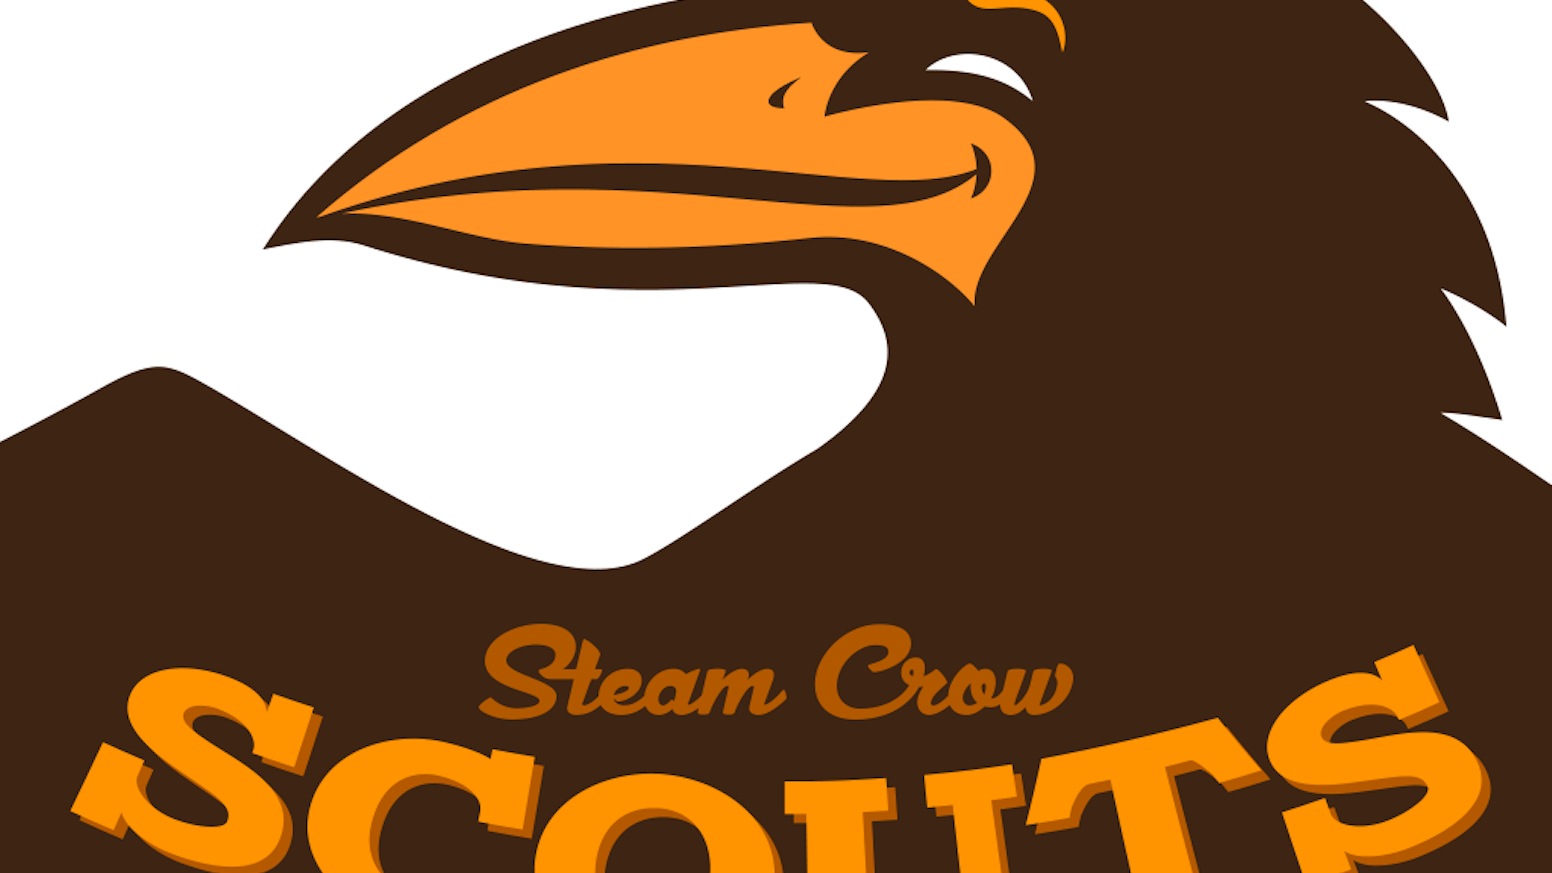 The Steam Crow Scouts is a community where you can earn badges for being a great Patron, Helper, or Activist. We believe in Monsters!